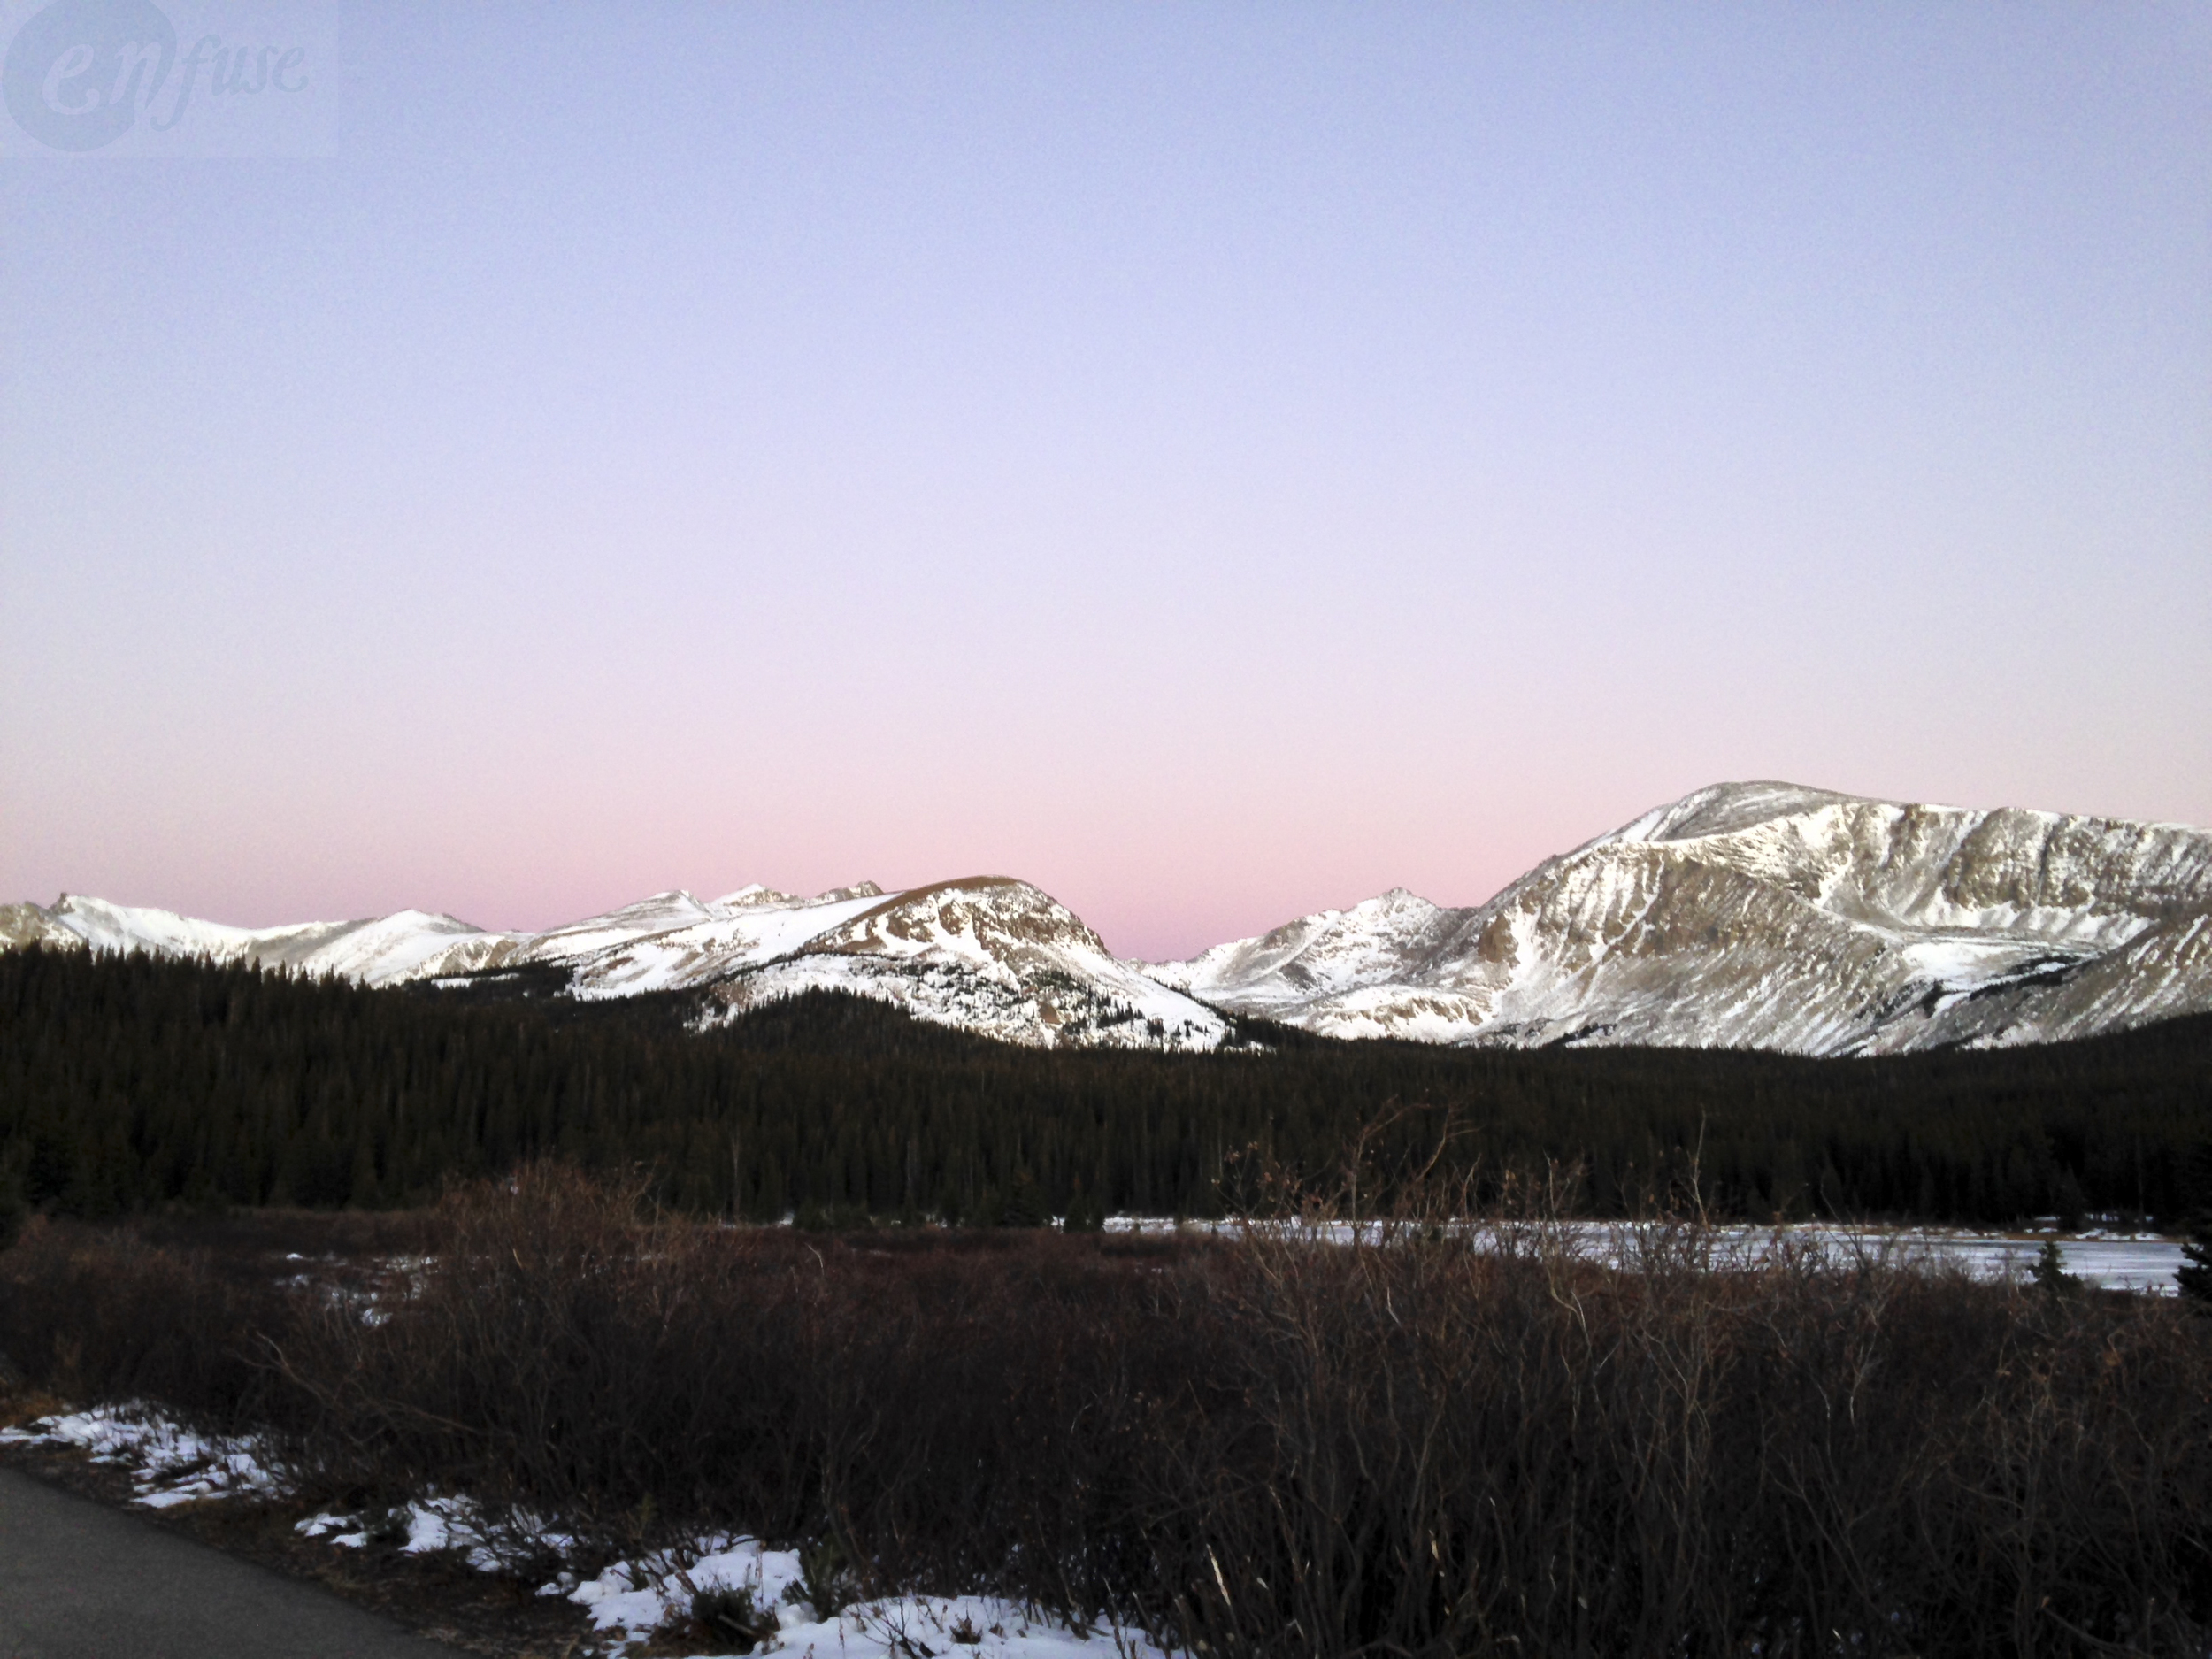 Photo taken from one of my favorite places in Colorado. The colors of the skies and landscape always make me pause for a moment of gratitude and awe.